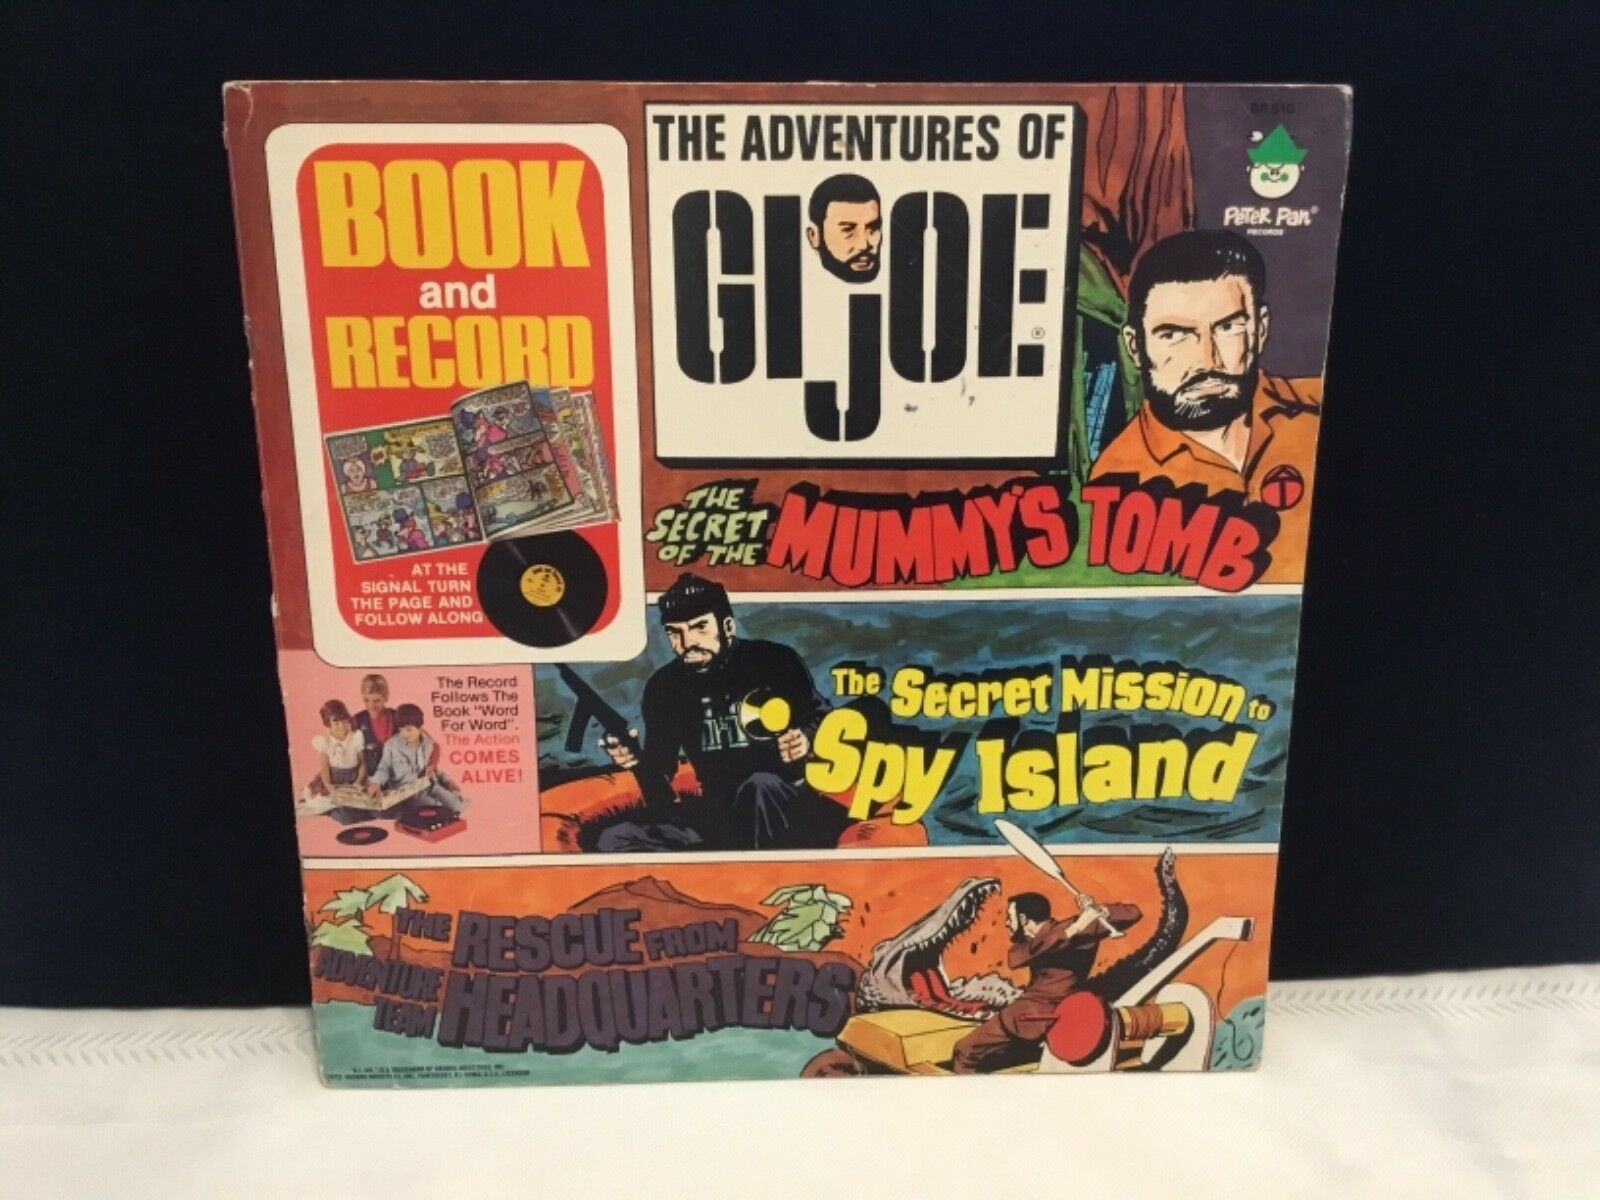 Vintage 1975 Hasbro The Adventures of of of G.I. Joe book & Read Along record  (P30) c38430